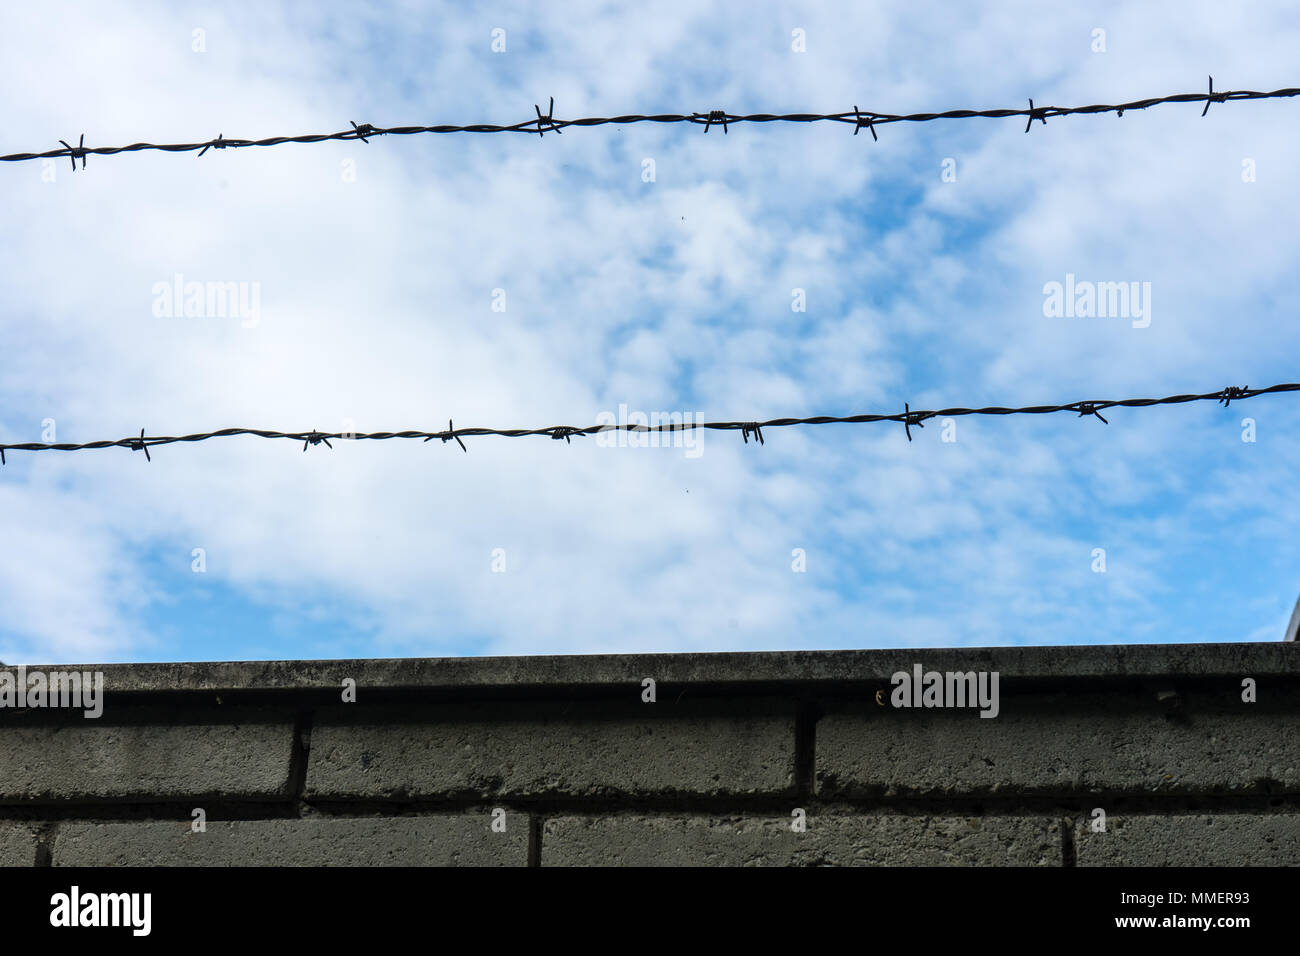 Barbed wire fence against the blue sky with clouds - Stock Image